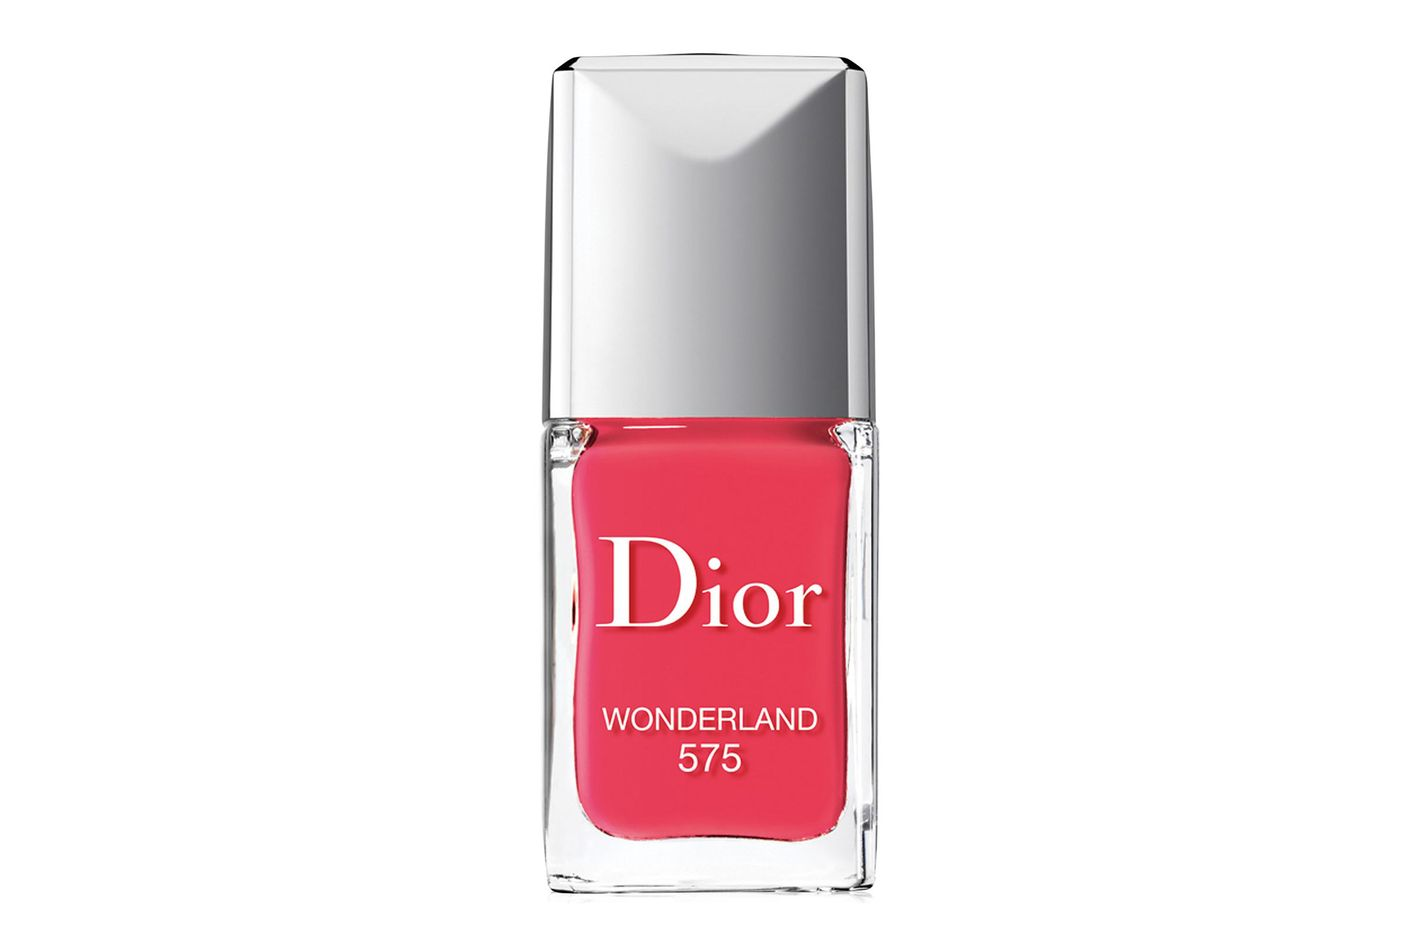 Dior Vernis Gel Shine & Long Wear Nail Lacquer in Wonderland